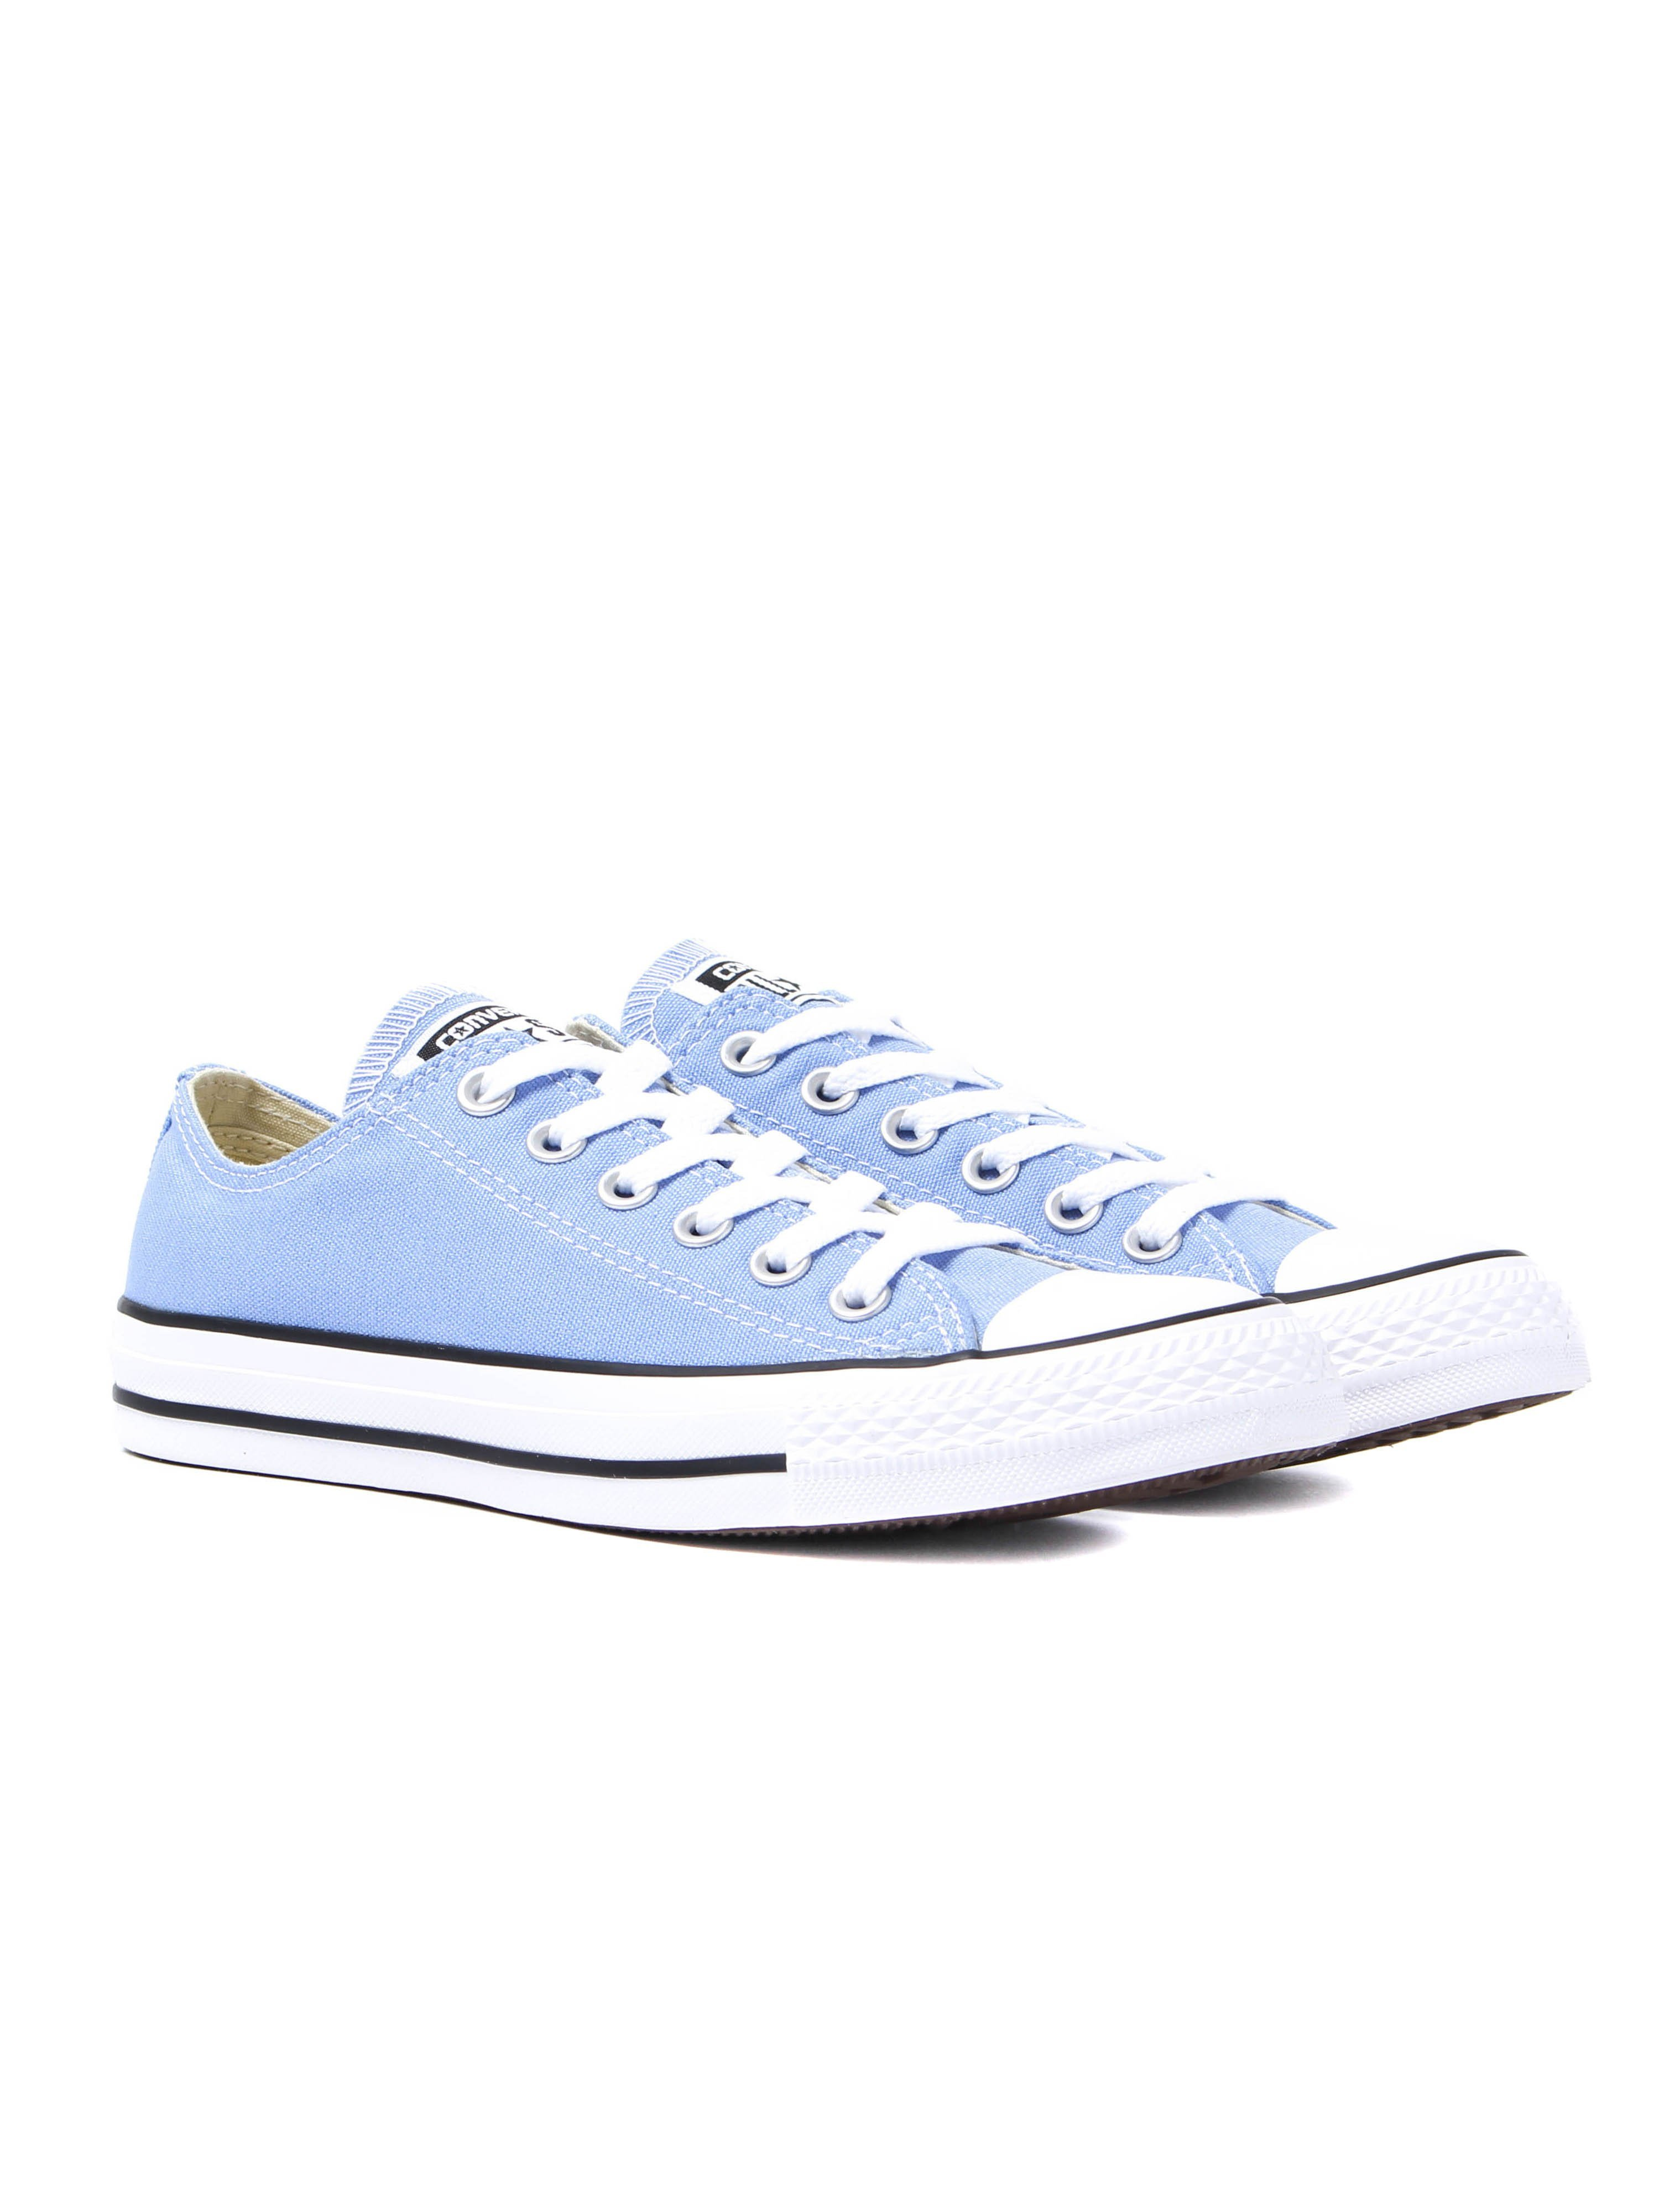 Converse Women's Chuck Taylor All Star OX Trainers - Pioneer Blue